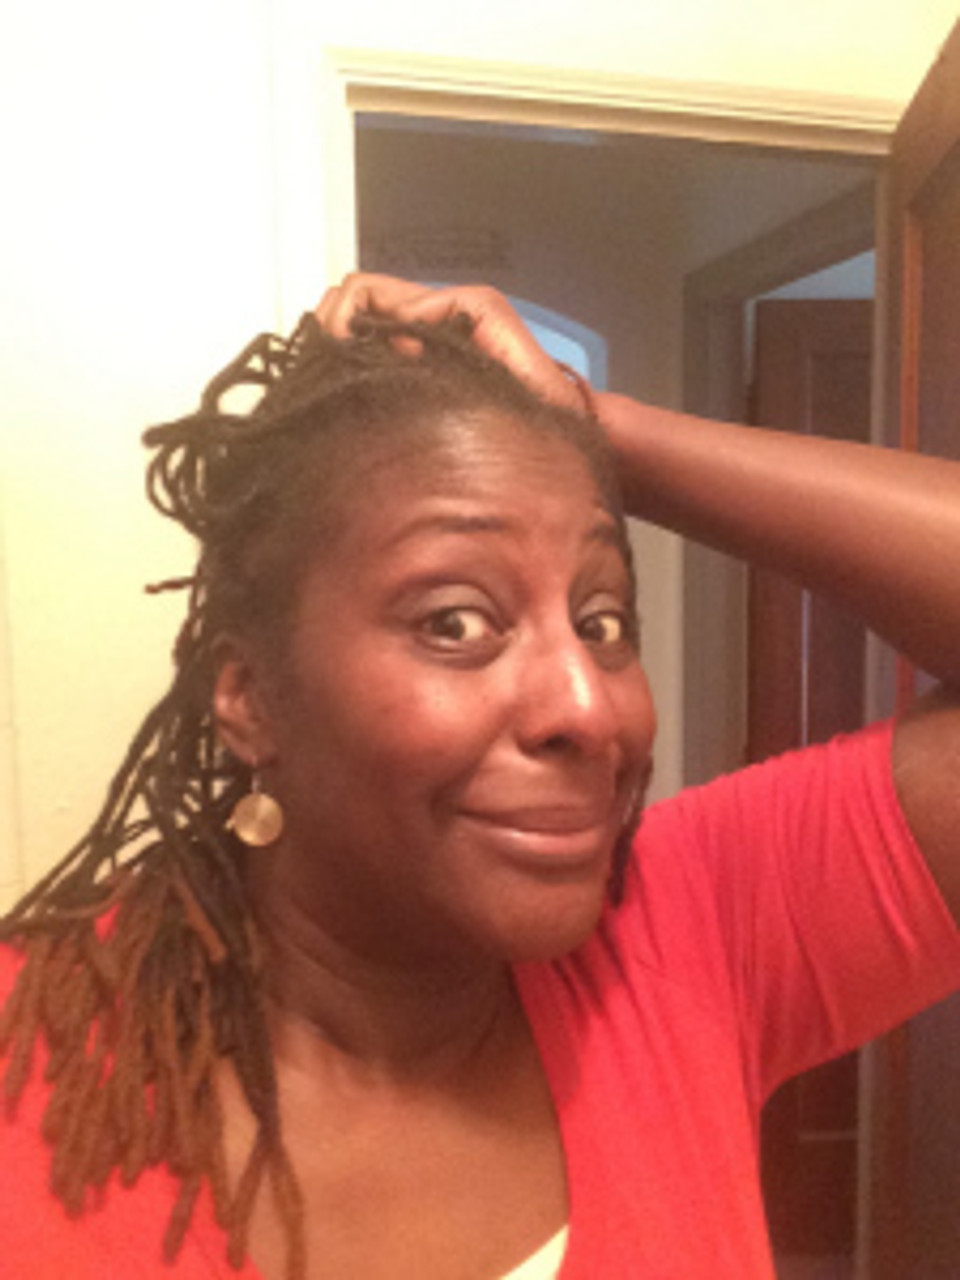 My locs need holistic love - can't hide from my loctician!